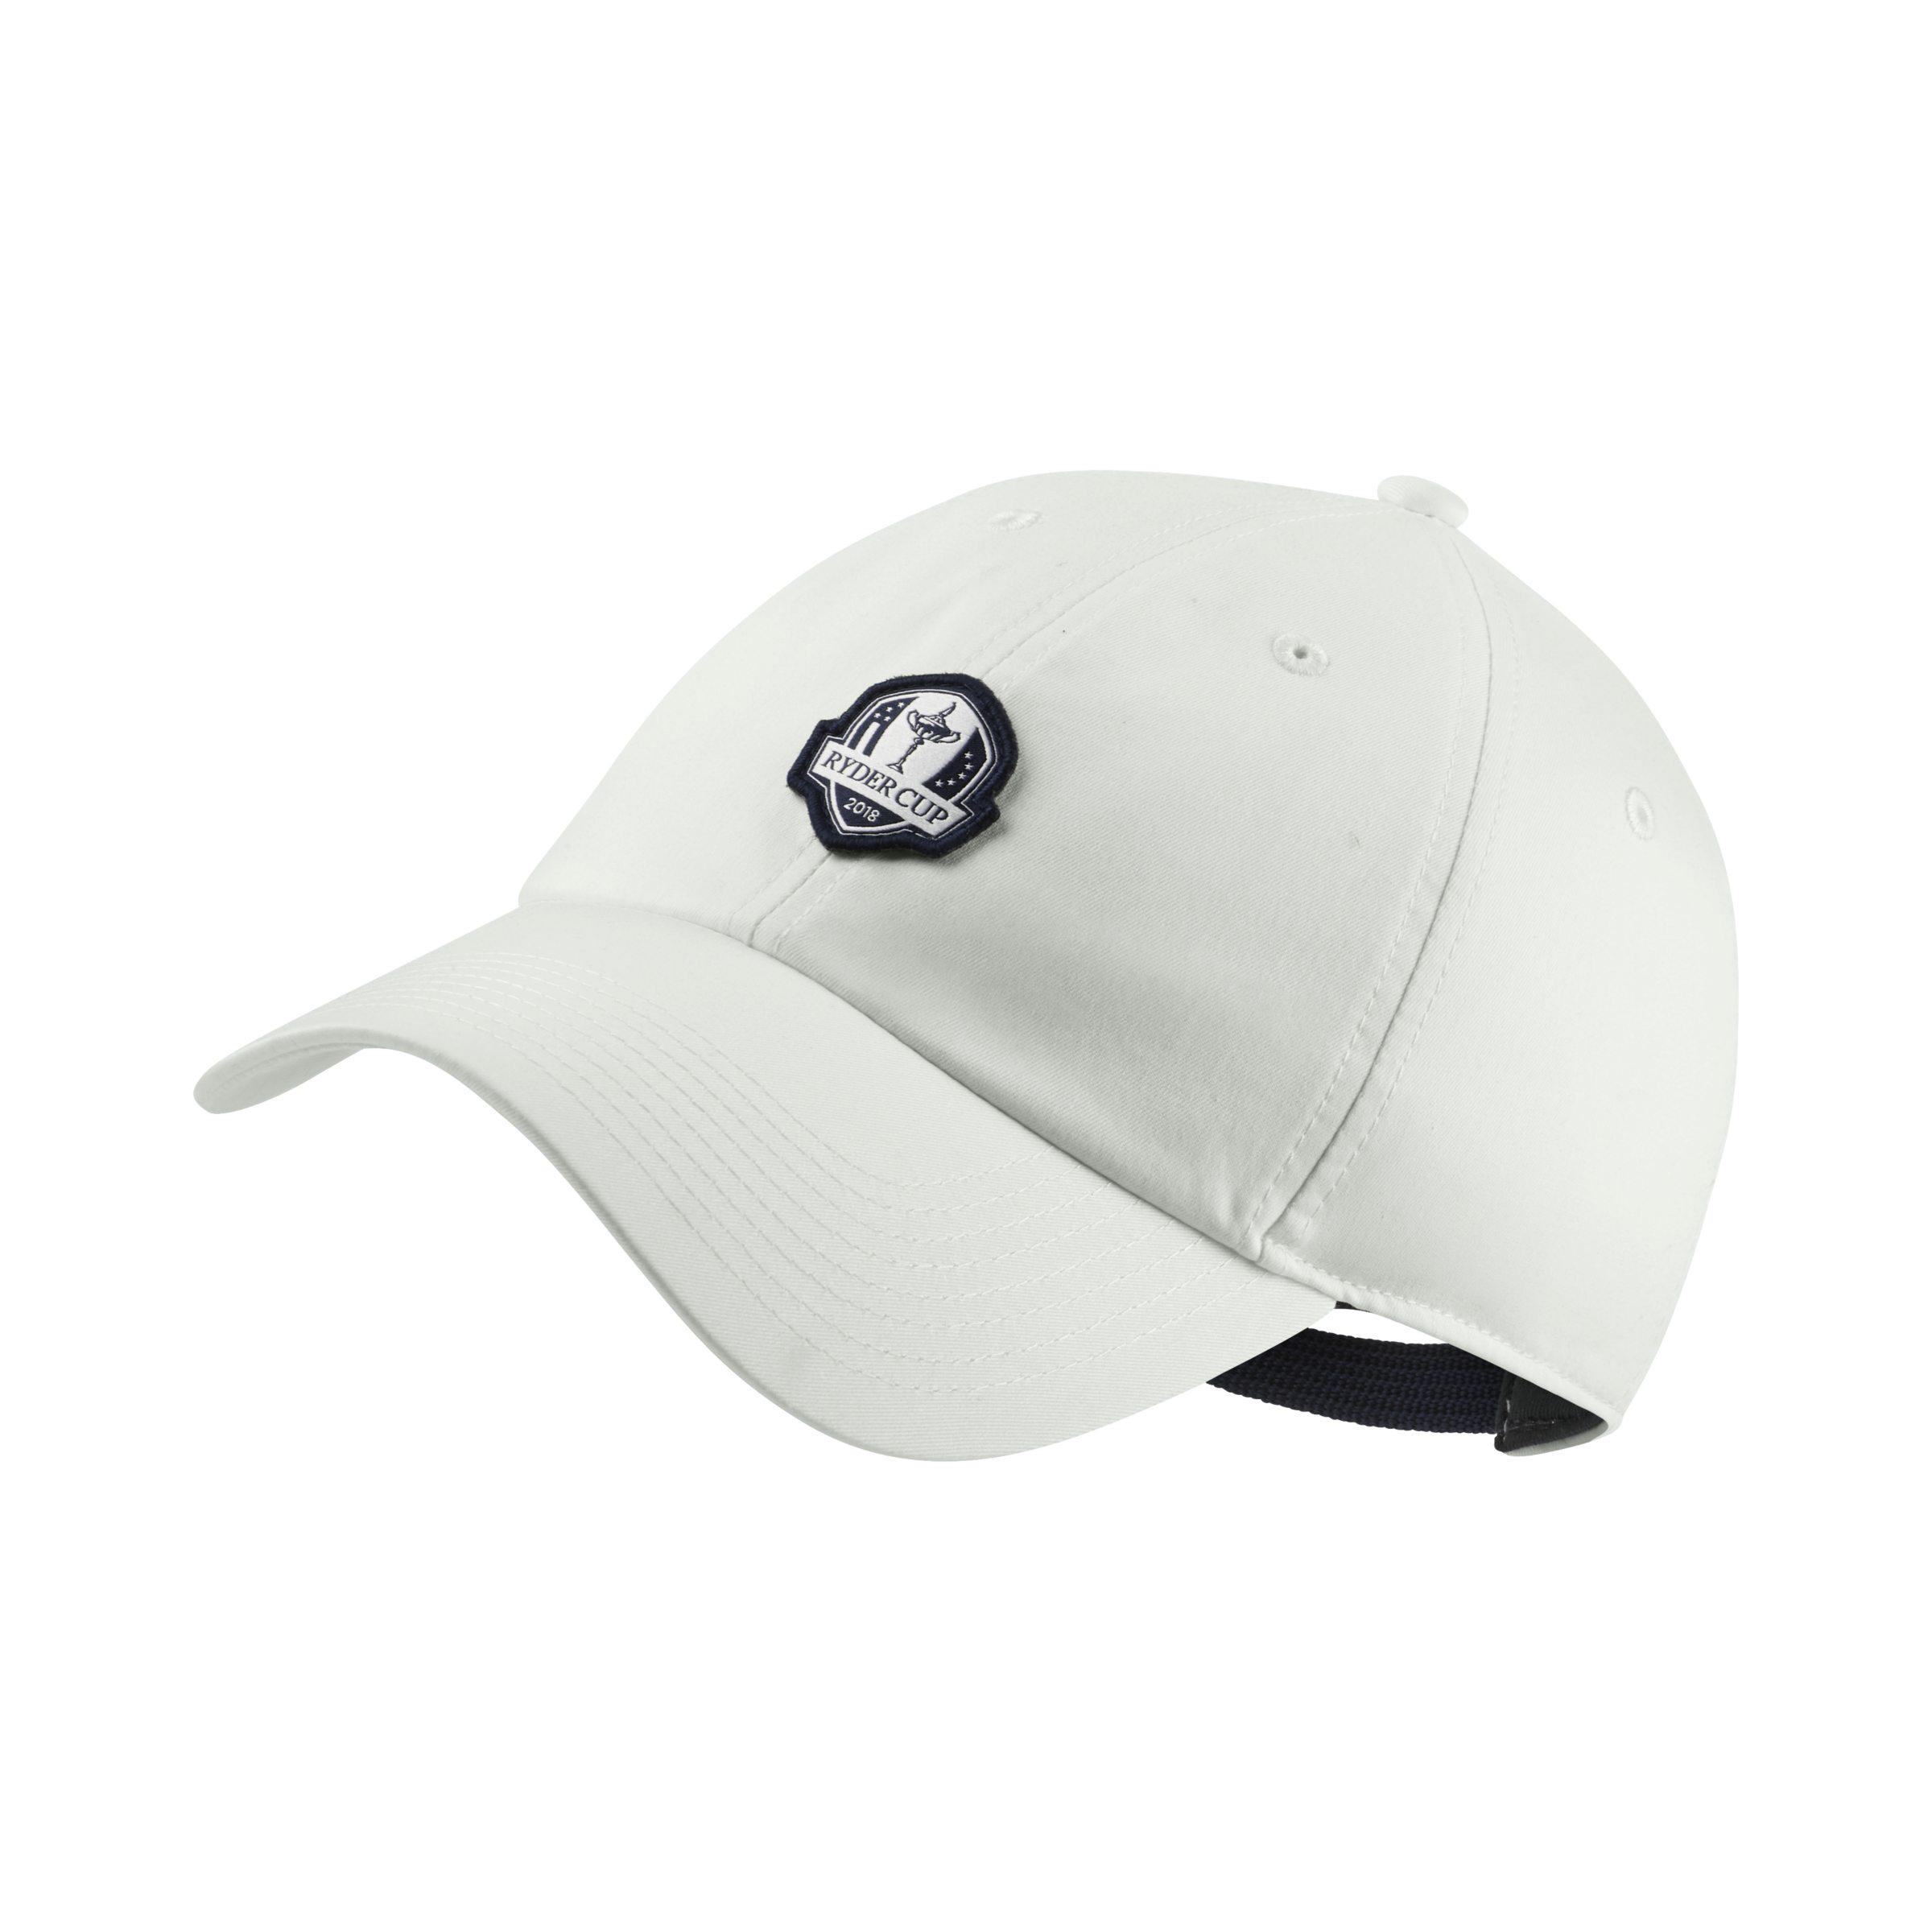 9598e9f2 Nike Heritage86 Ryder Cup Golf Hat in White - Lyst